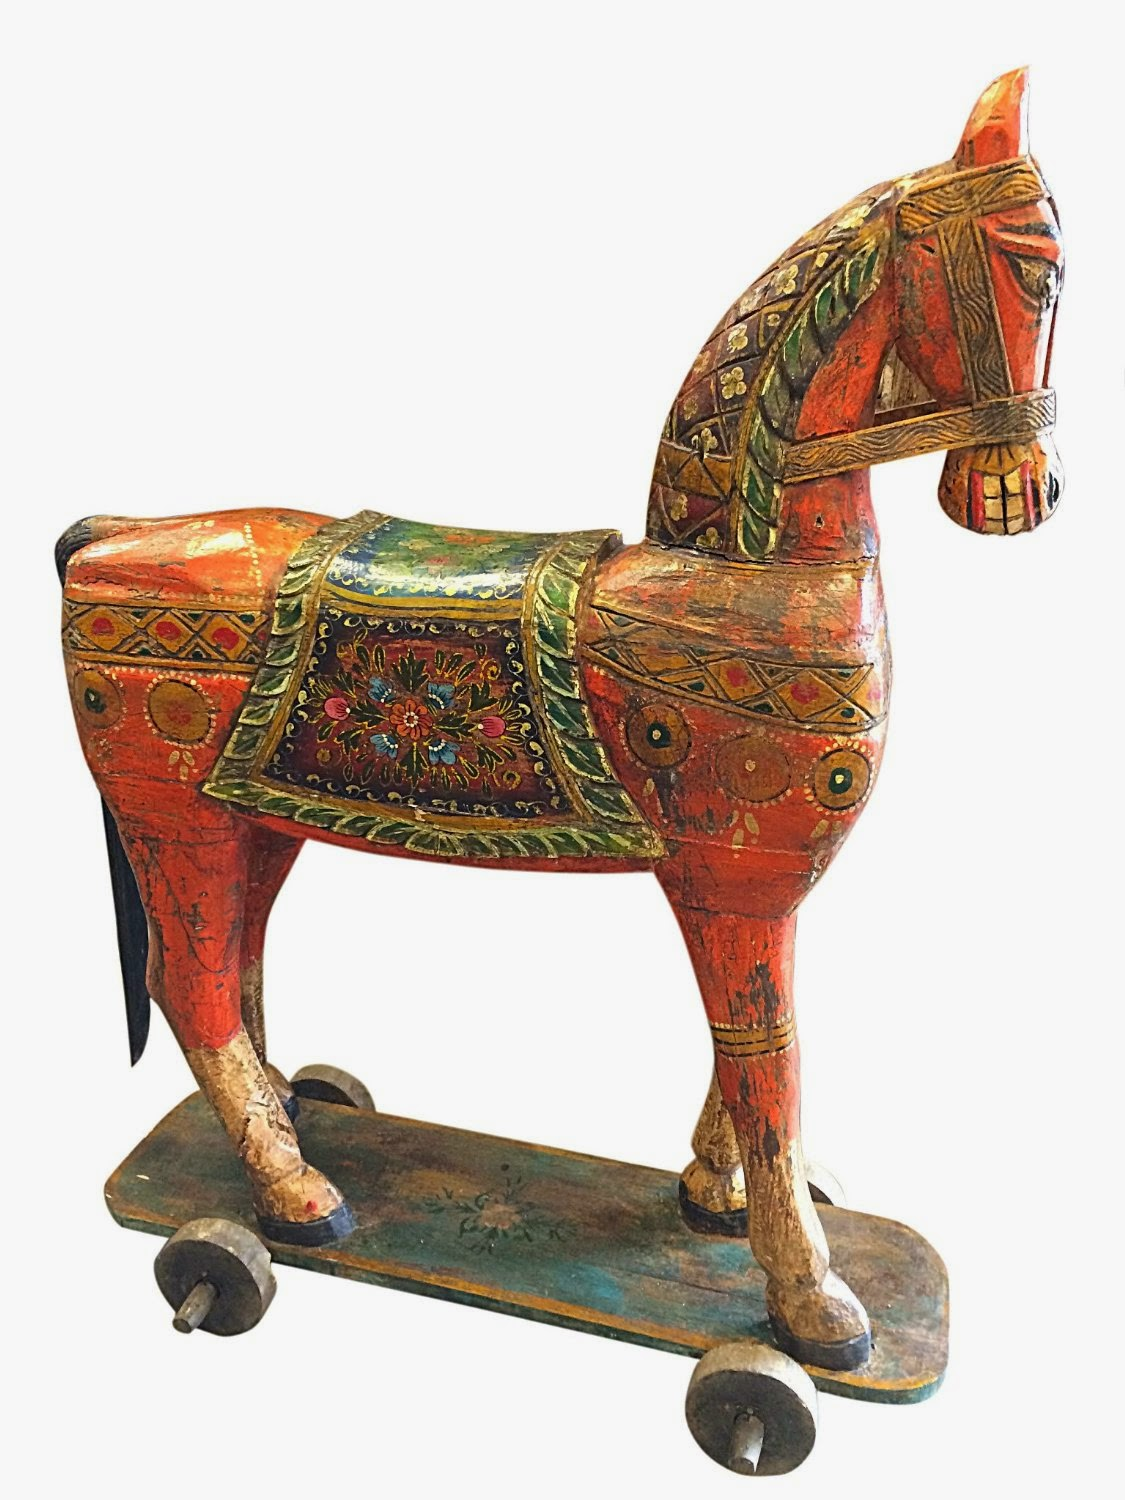 http://www.amazon.com/Antique-Horse-Wheels-Handmade-Sculpture/dp/B00STB255U/ref=sr_1_25?m=A1FLPADQPBV8TK&s=merchant-items&ie=UTF8&qid=1427434743&sr=1-25&keywords=home+decorative+item